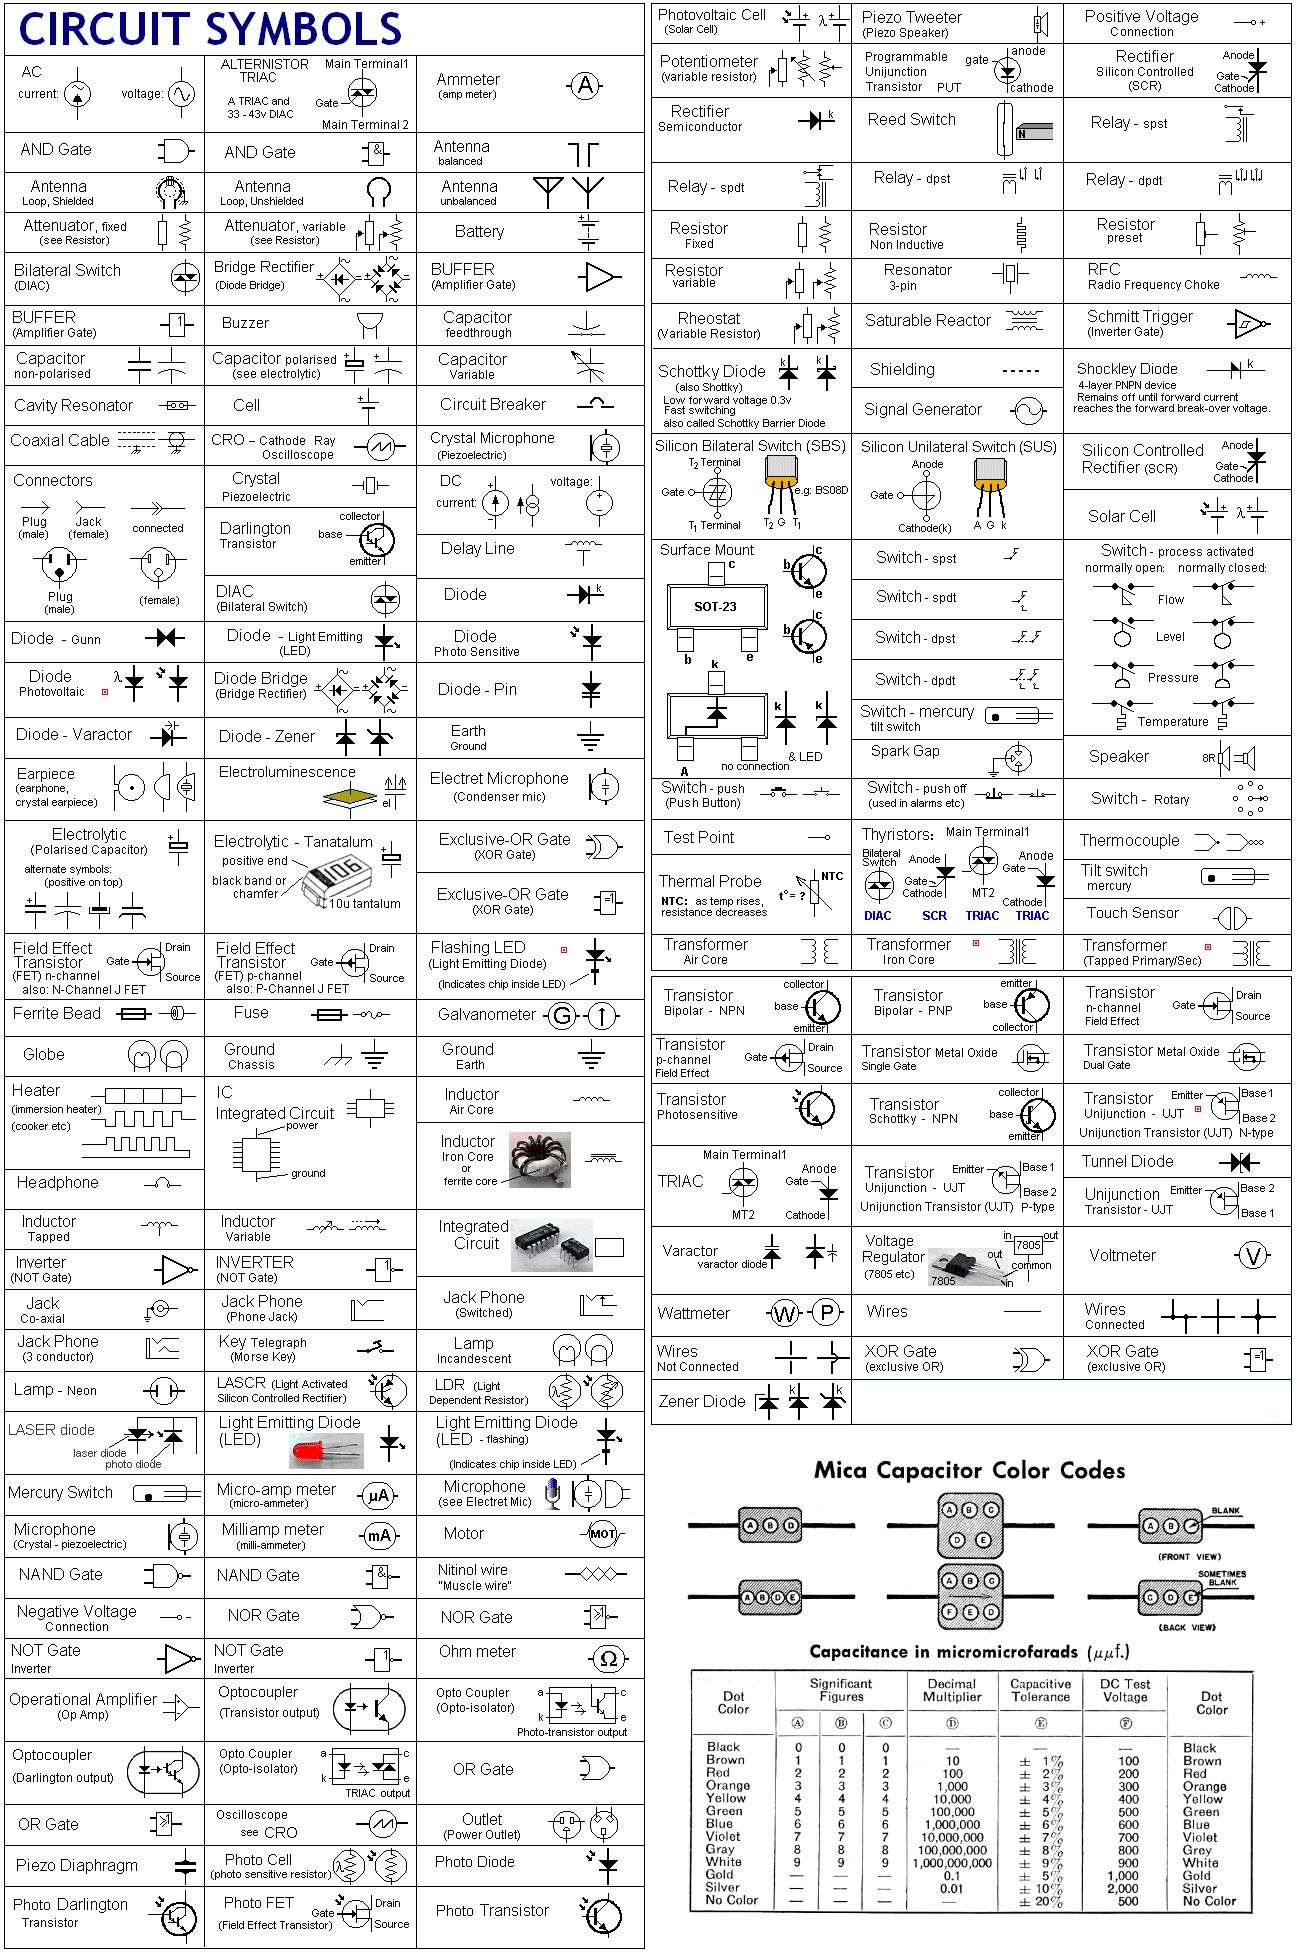 6c64fb84c8e162b28334051891c290f4 schematic symbols chart electric circuit symbols a considerably wiring diagram symbols at couponss.co